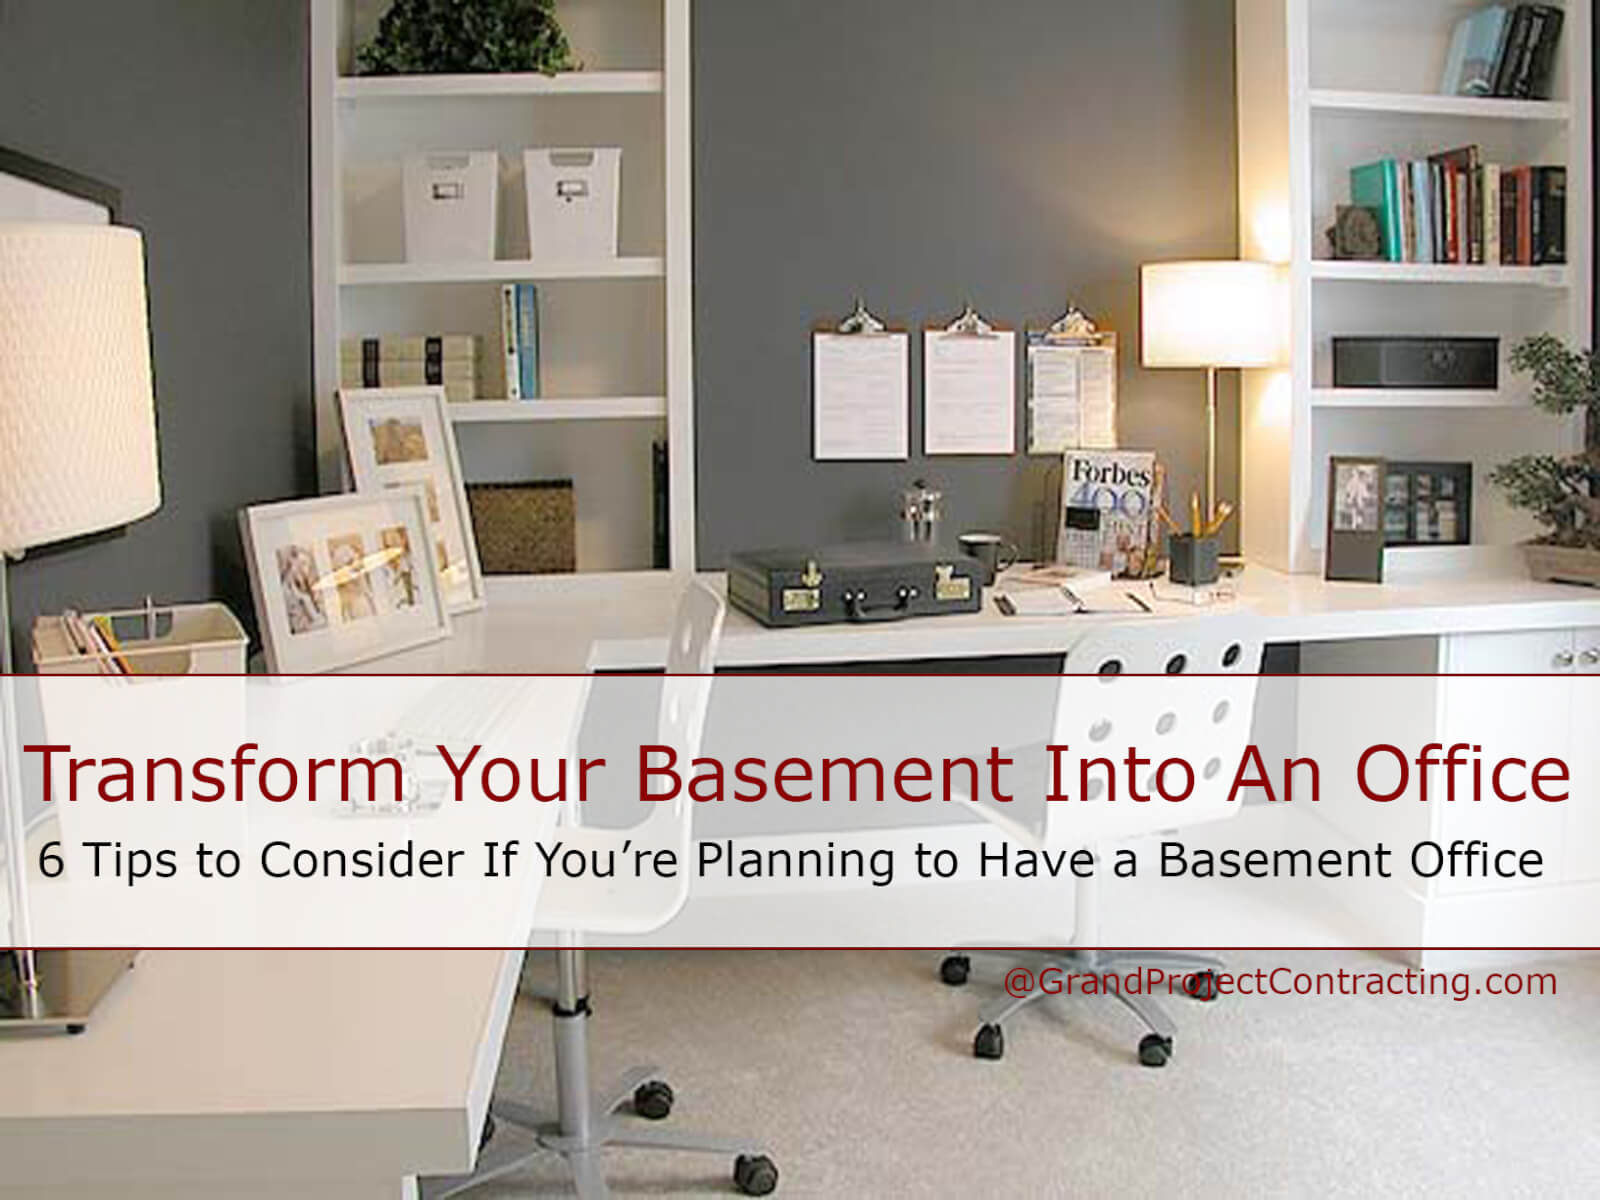 Basement Offices Ideas Transform Your Basement Into An Office Basement Renovation